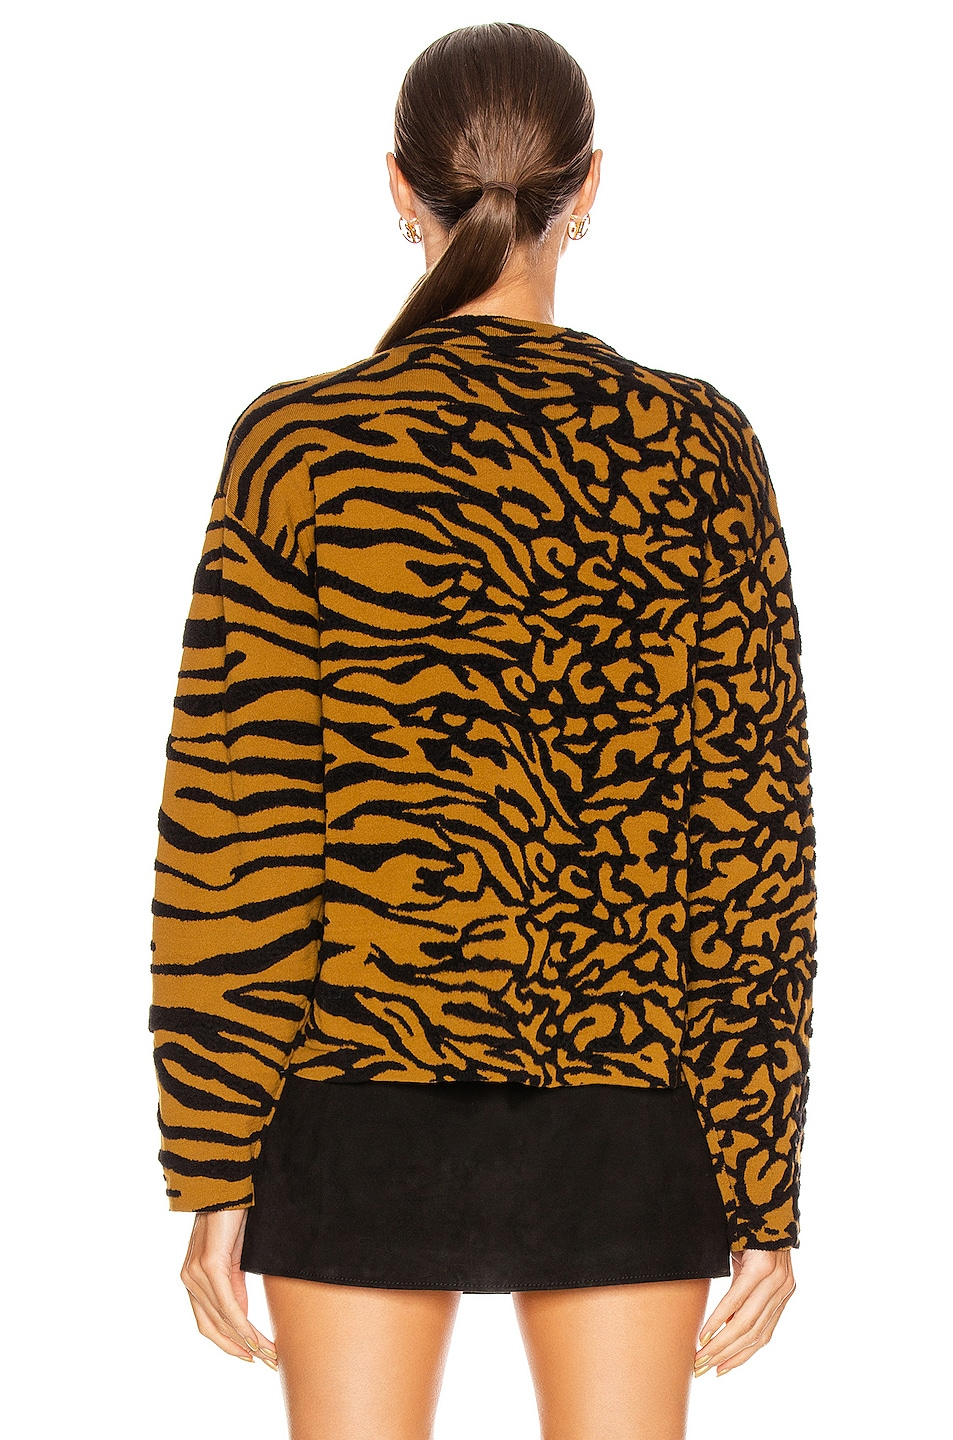 Image 3 of Proenza Schouler White Label Animal Jacquard Cropped Pullover in Fatigue & Black